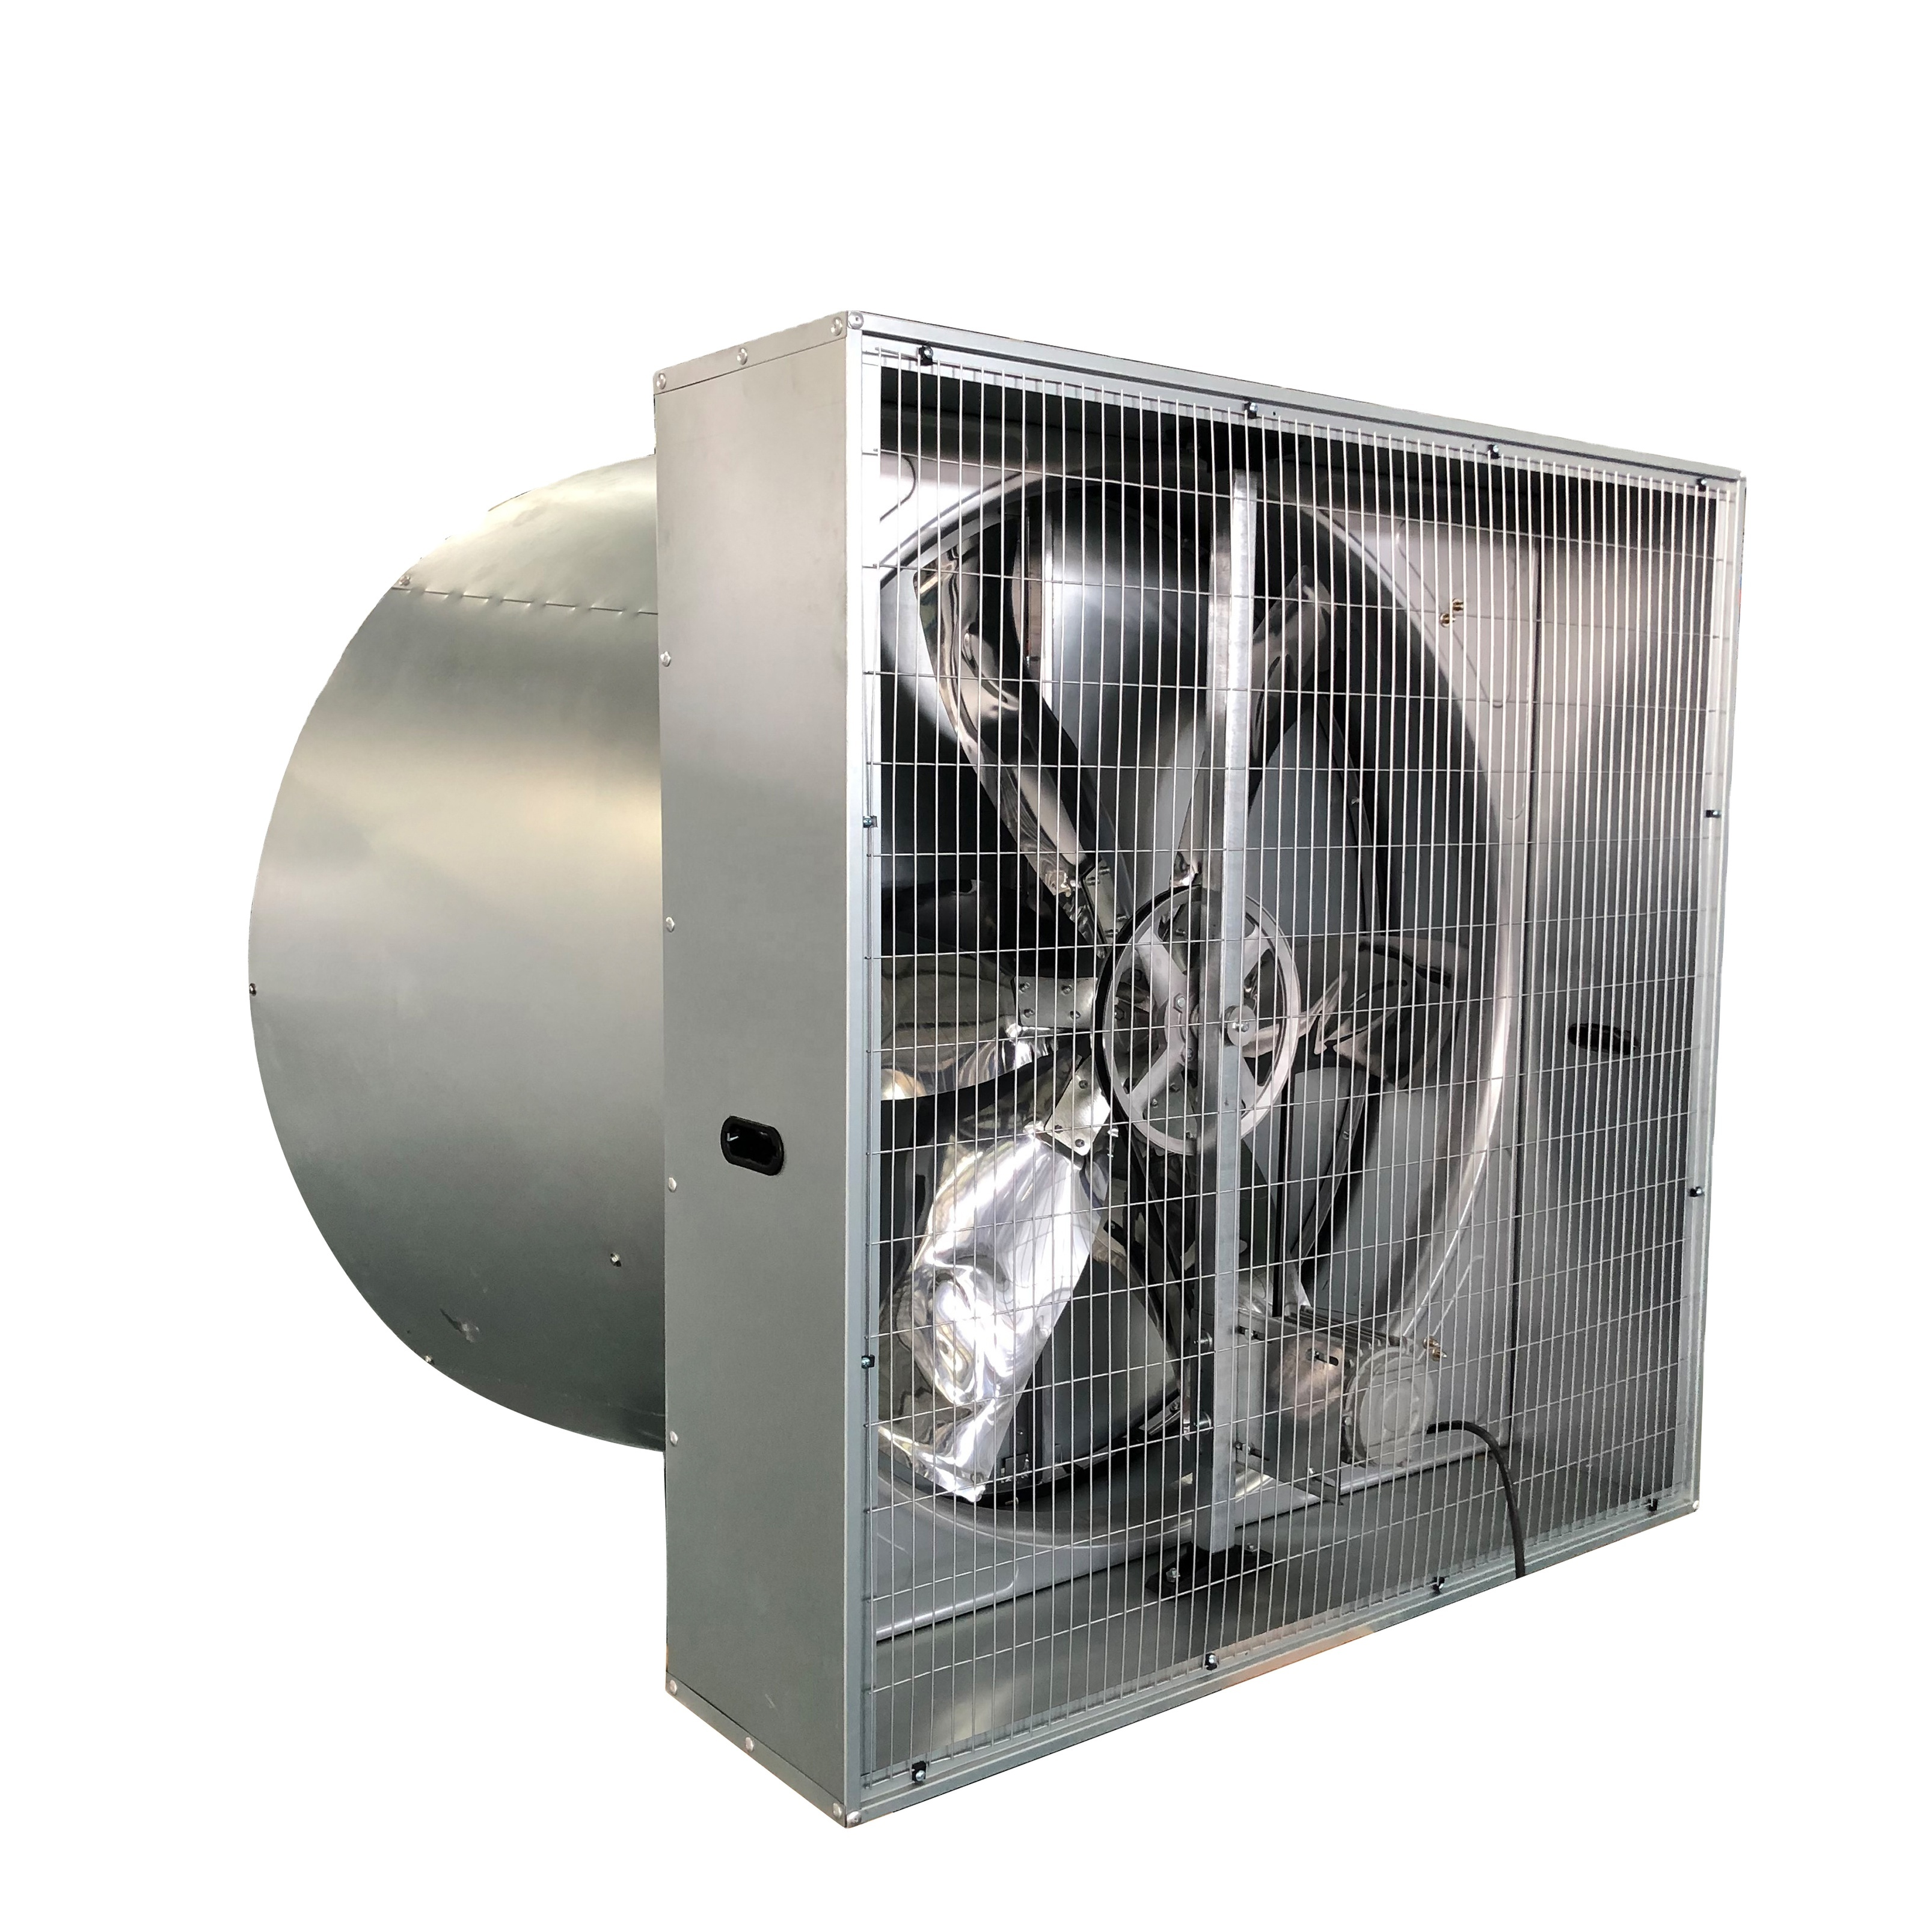 jlf series butterfly cone exhaust fan with low cost with high quality buy exhaust fan cone exhaust fan butterfly cone exhaust fan product on alibaba com